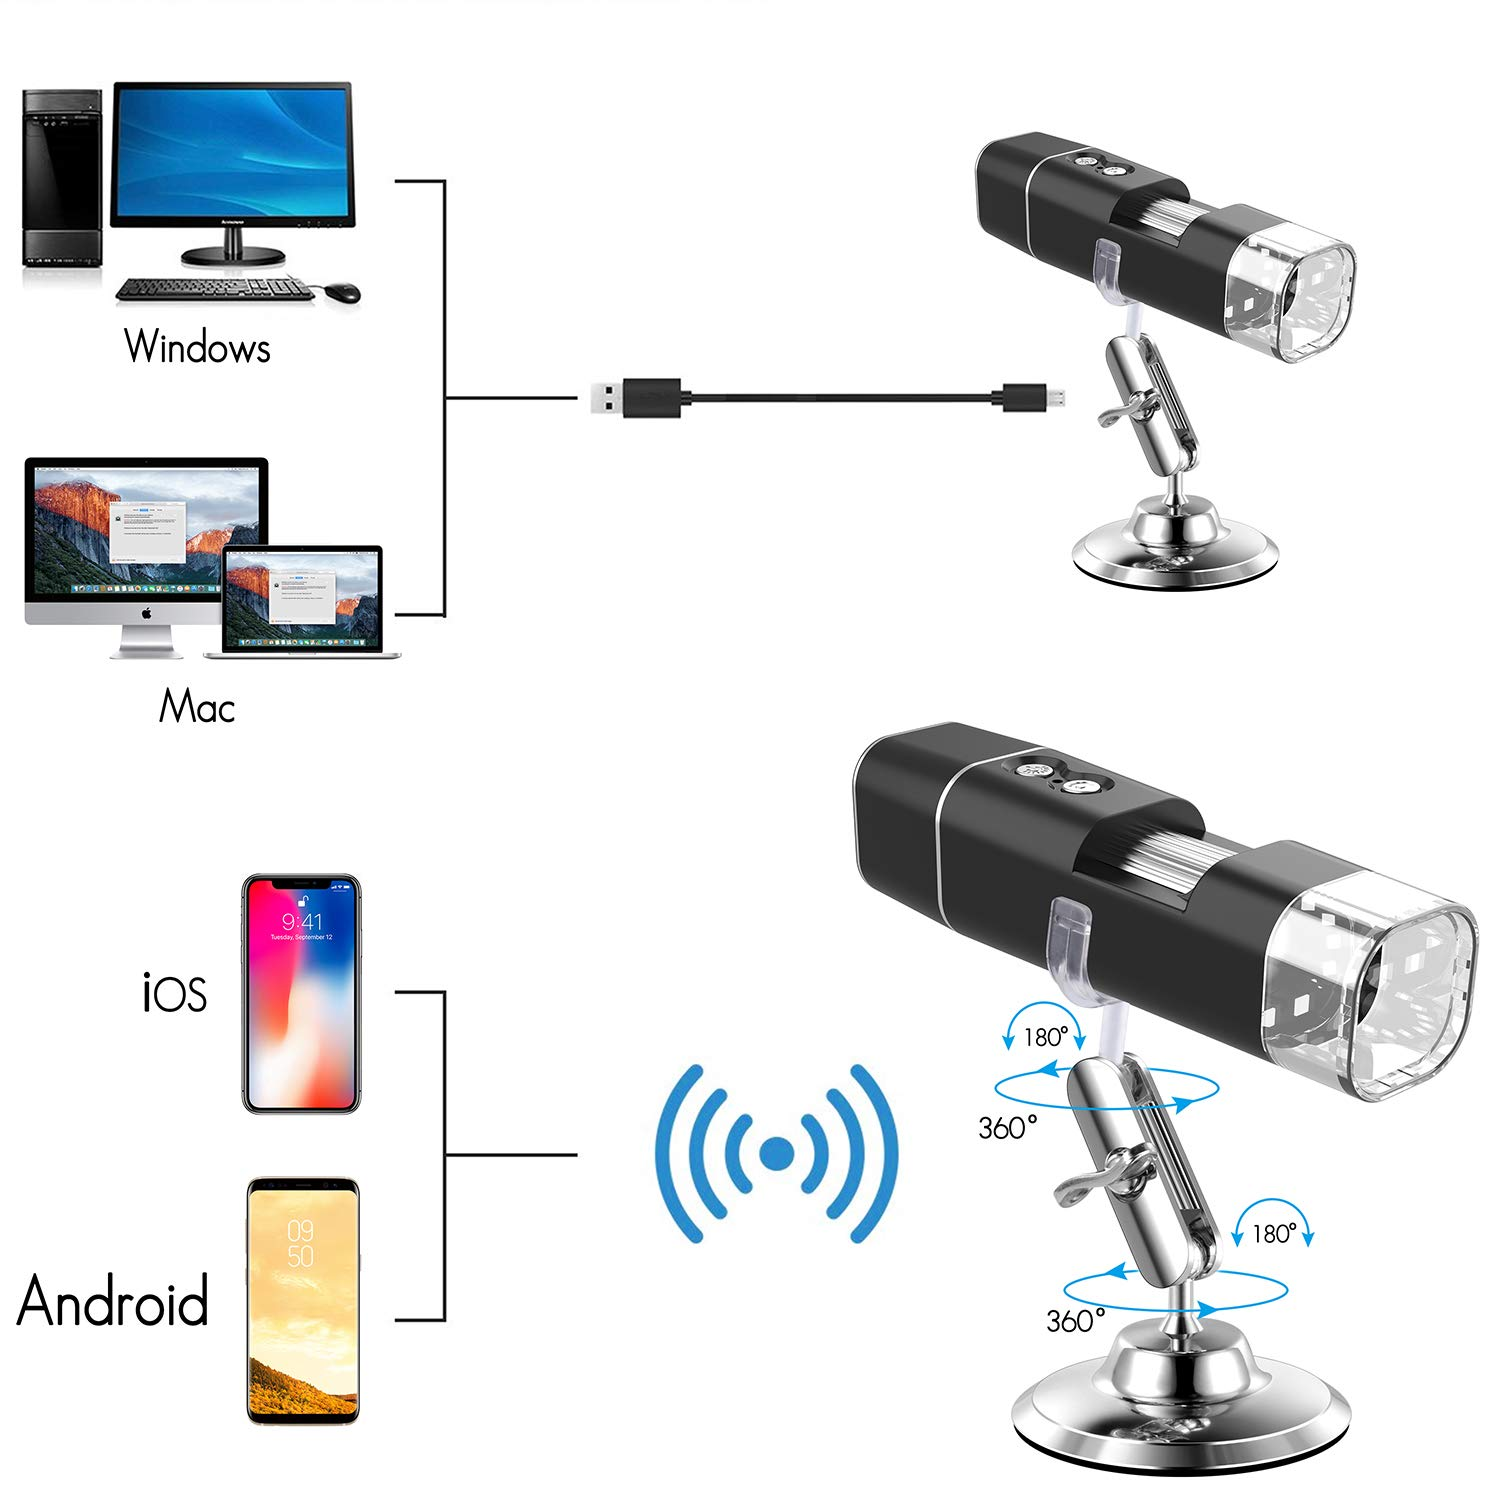 WiFi USB Microscope,Wireless Digital Kids Microscope Rechargable Portable with 1080P Resolution,1000X Magnification LED Lights for Android and iOS Smartphone or Tablet Windows Mac PC Banne